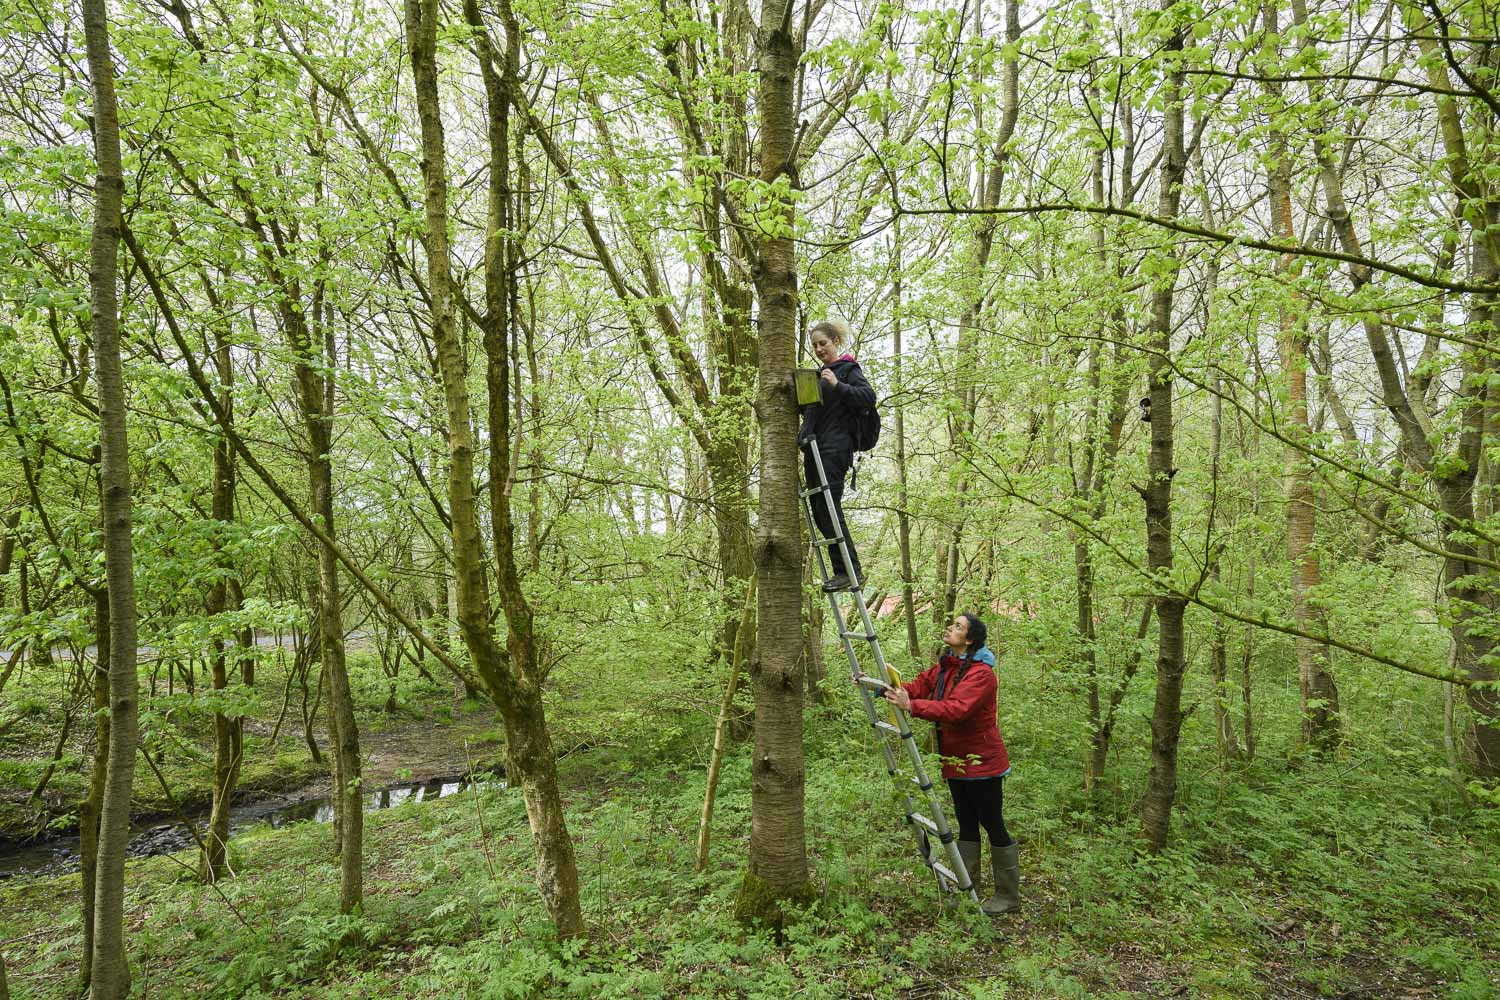 Vicki Pattison Willits and field assistant inspecting nest box at study site in urban woodland, Birmingham.ield research